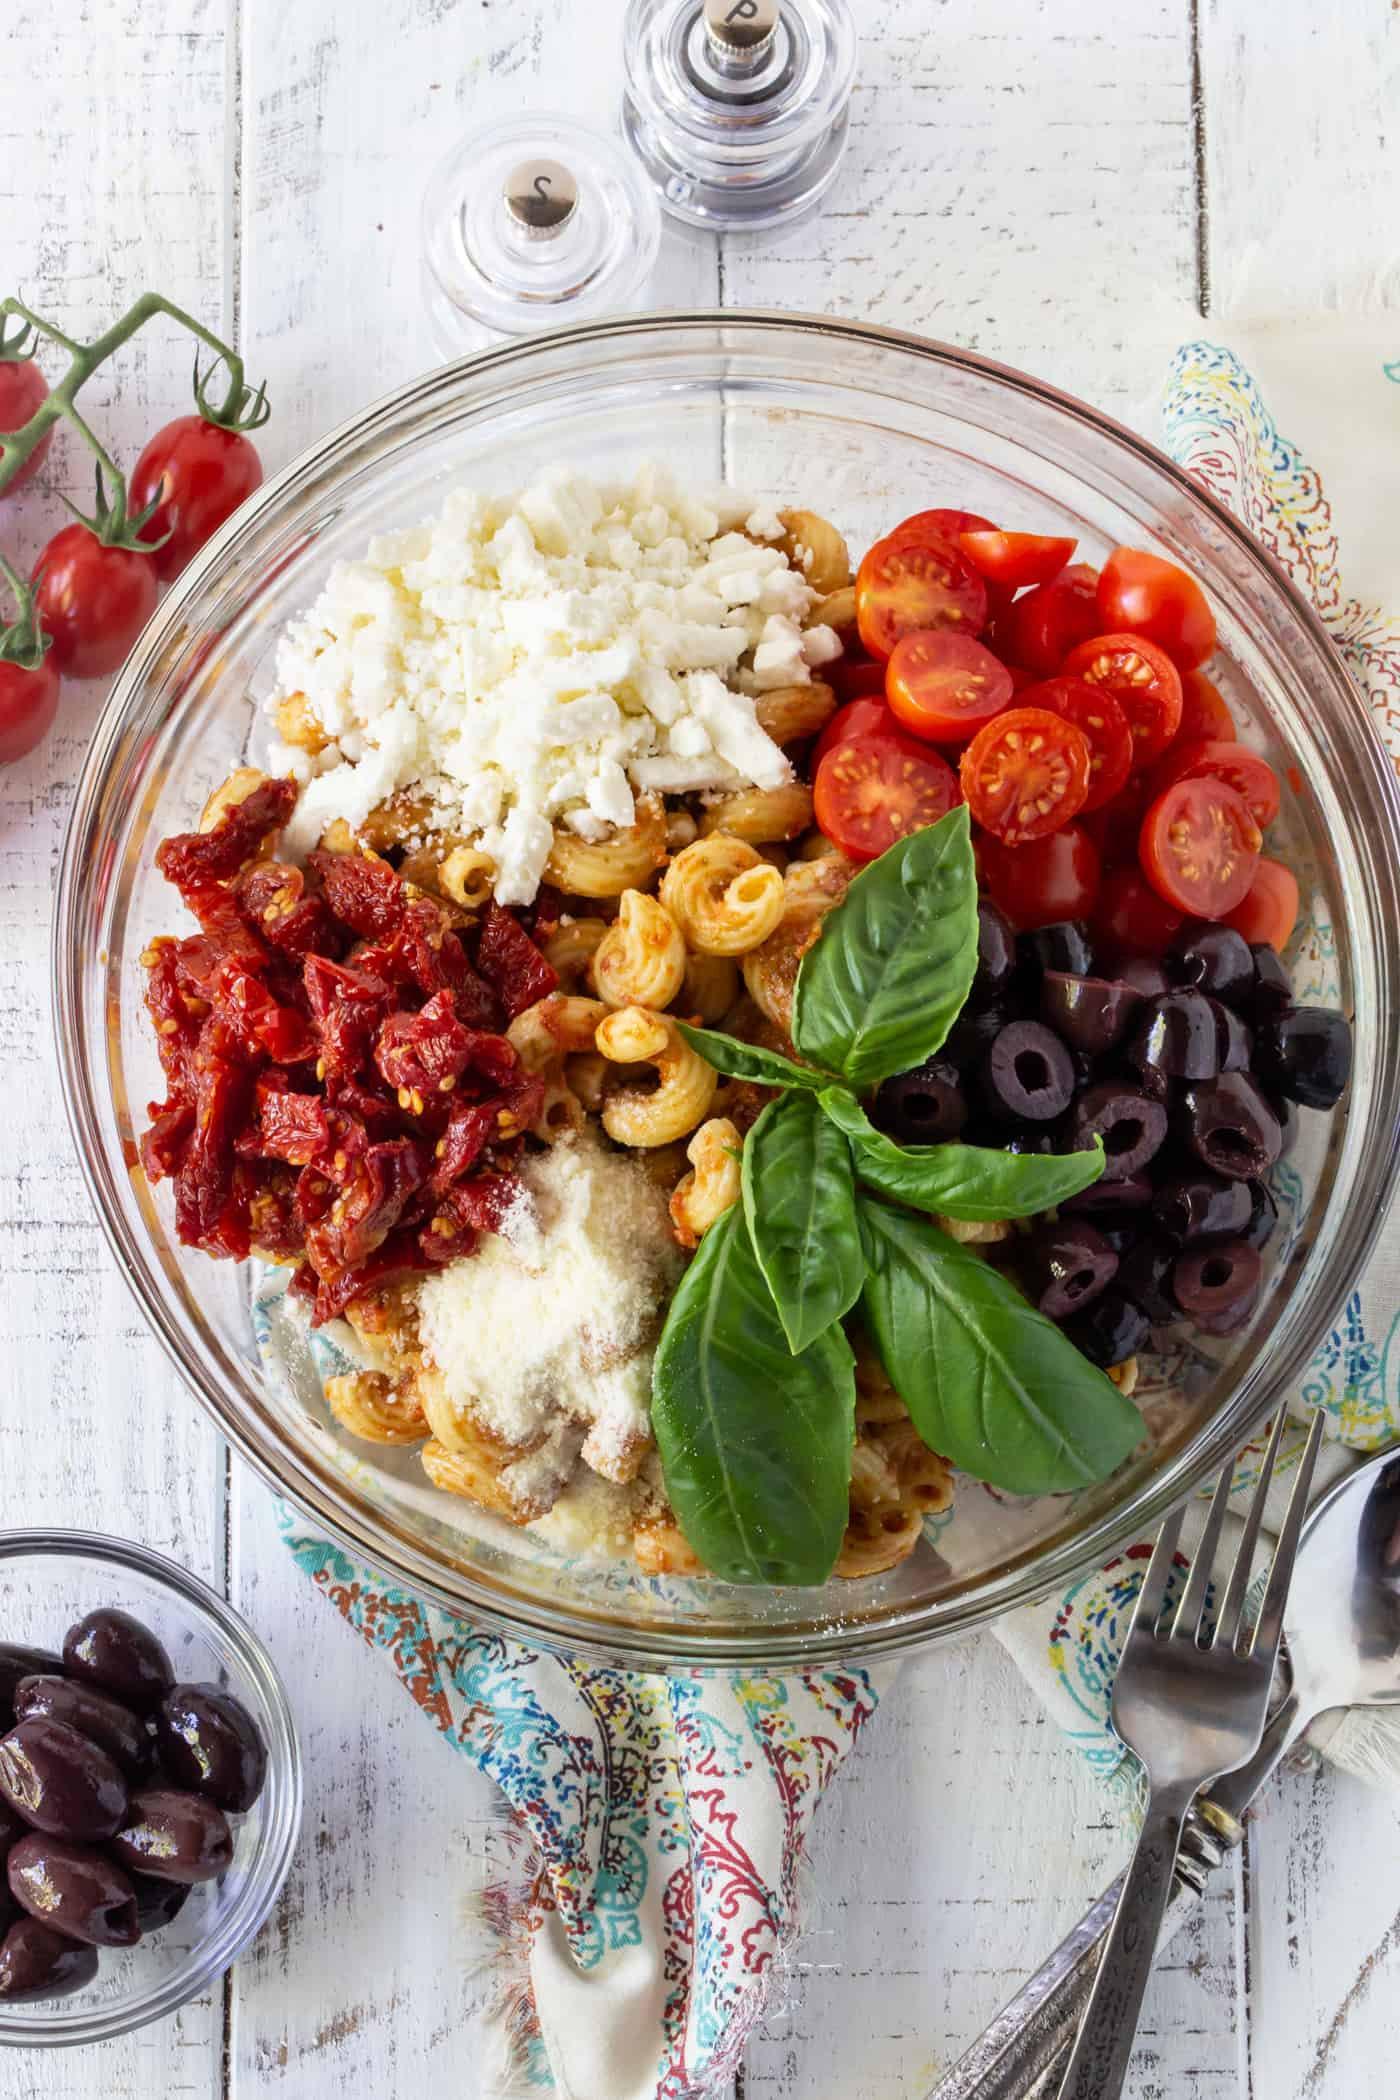 Glass bowl filled with pasta, kalamata olives, feta cheese and sun dried tomatoes.